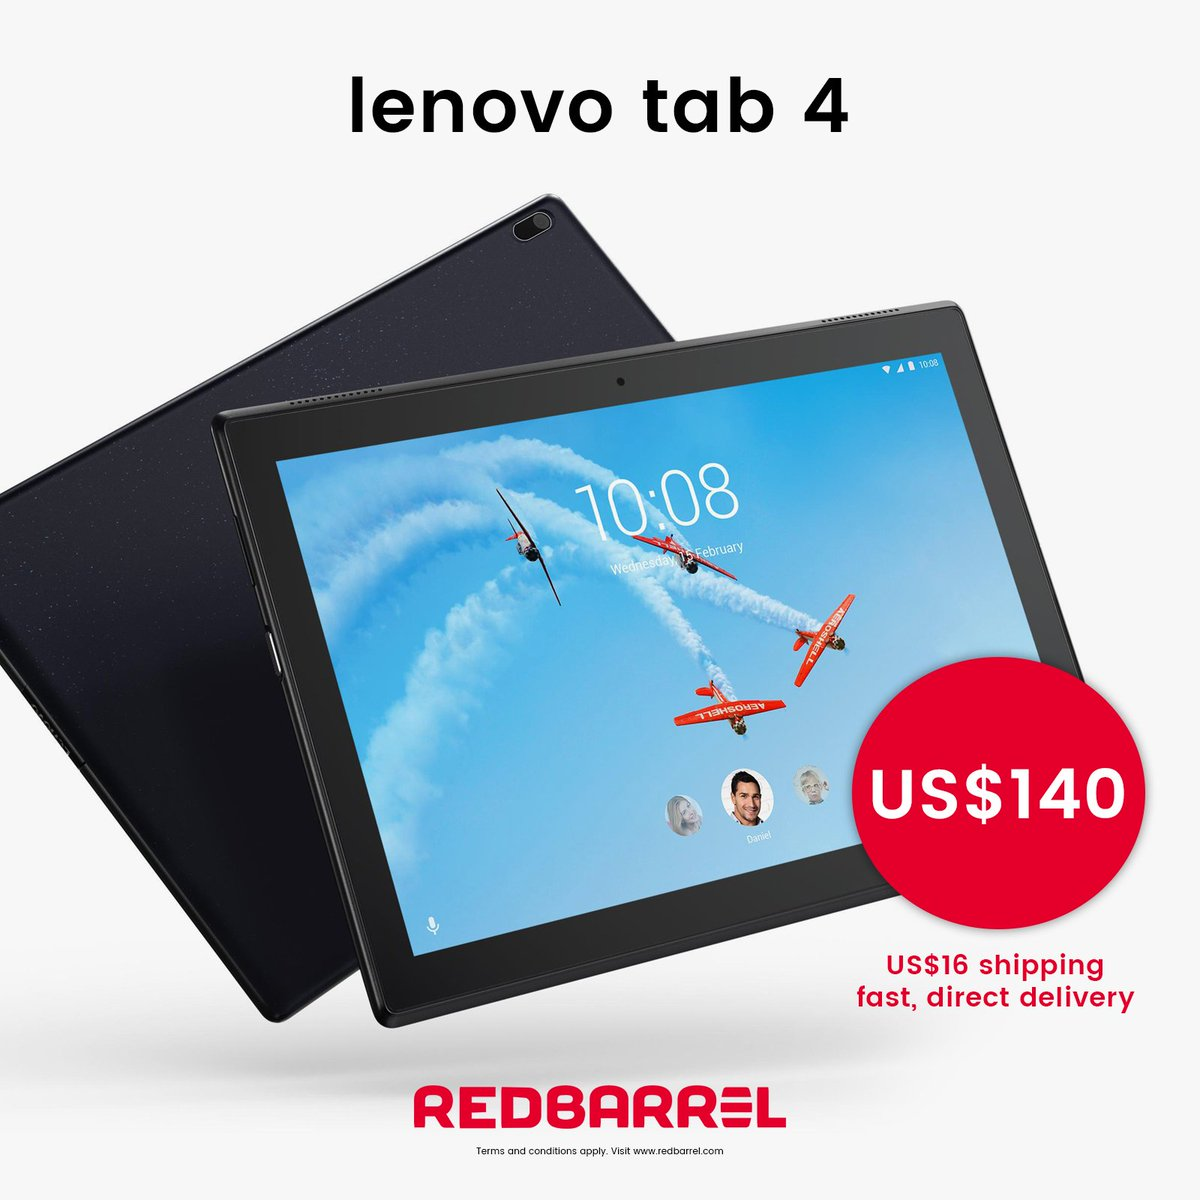 Stocks Are Limited So Get Yours Now And Receive Fast Home/office Delivery  And Pay Only US$16 In Shipping Fees! Shop Now   Https://bit.ly/2IEEOhq  @lenovo ...